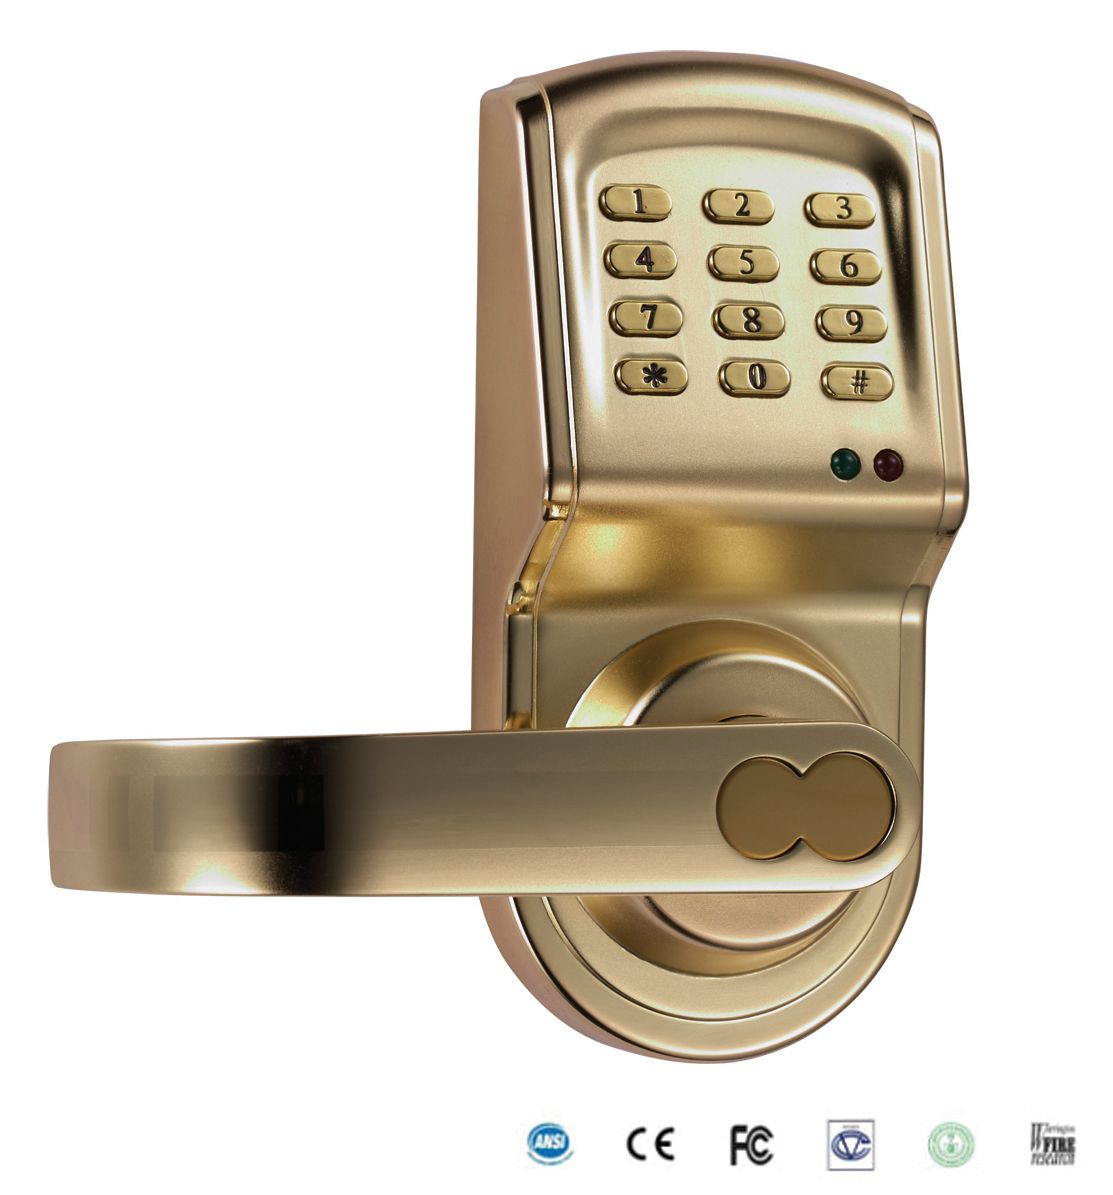 Assaabloydigi Fingerprint Doorlock Door Keypad Satin